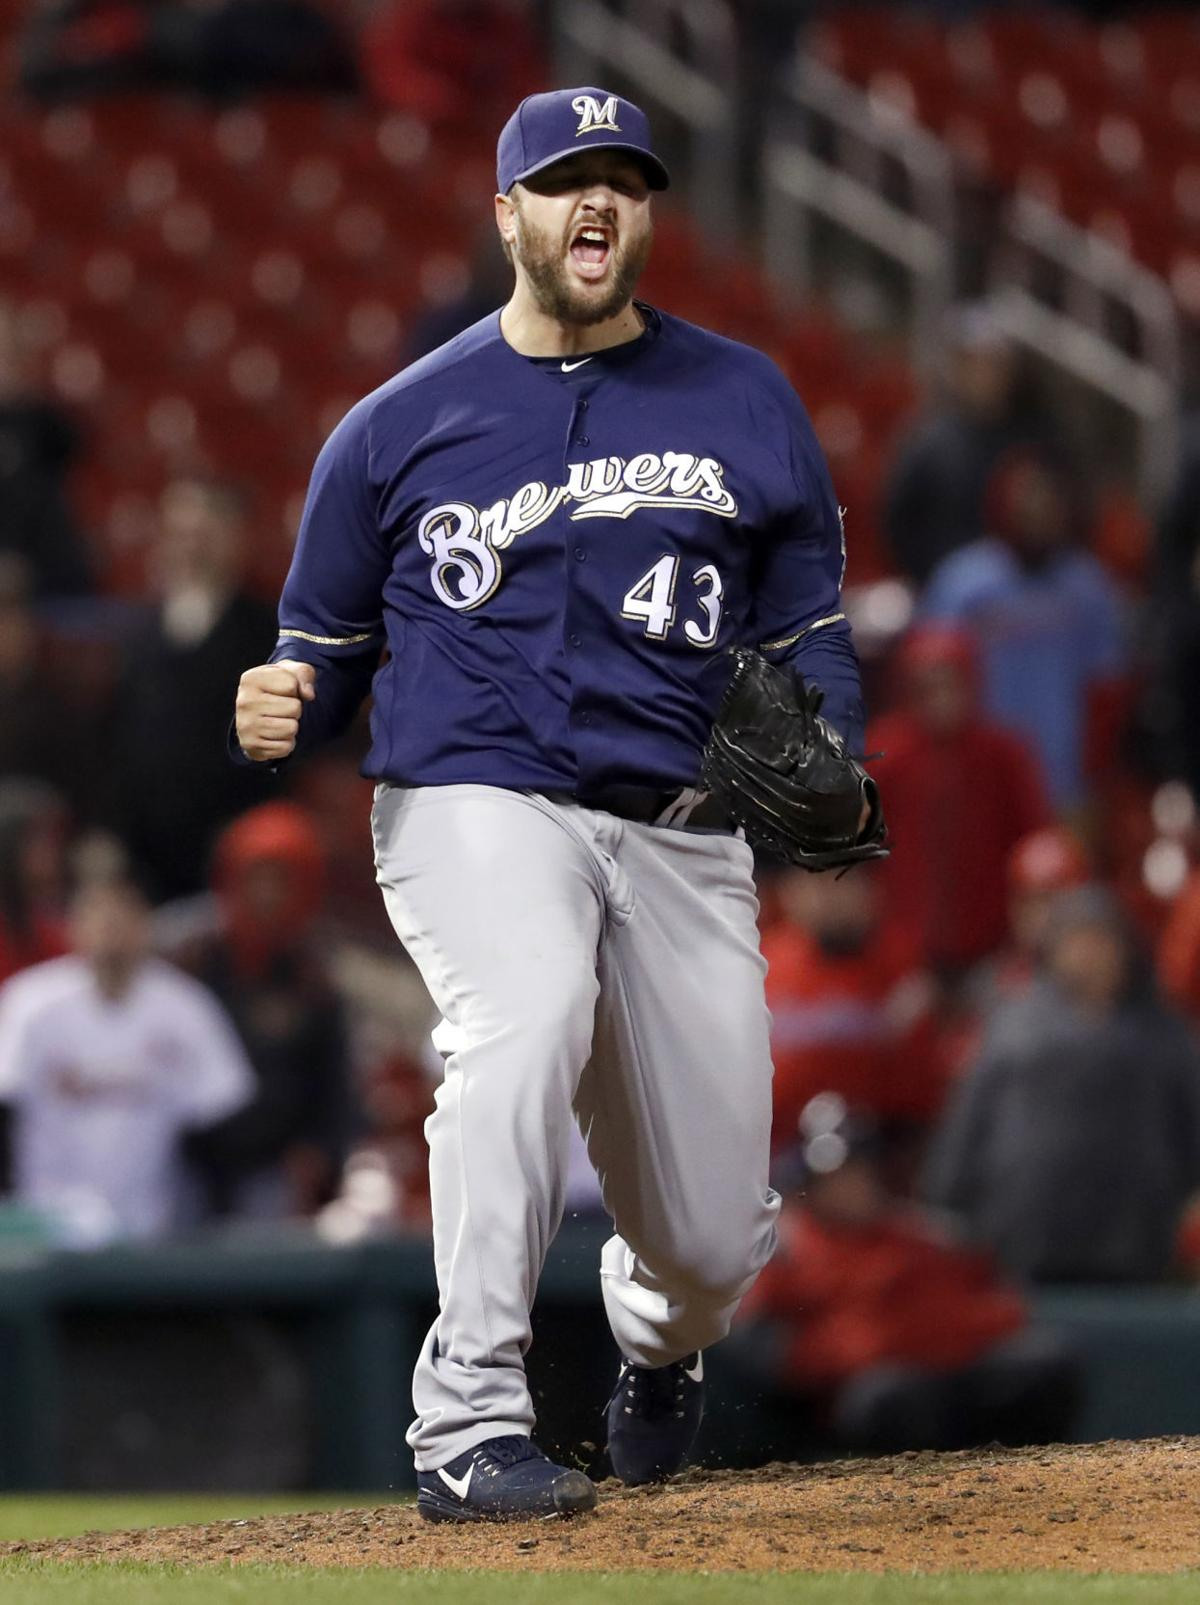 Milwaukee Brewers Bedroom In A Box Major League Baseball: Brewers Walk To 10-inning Win Over Cardinals